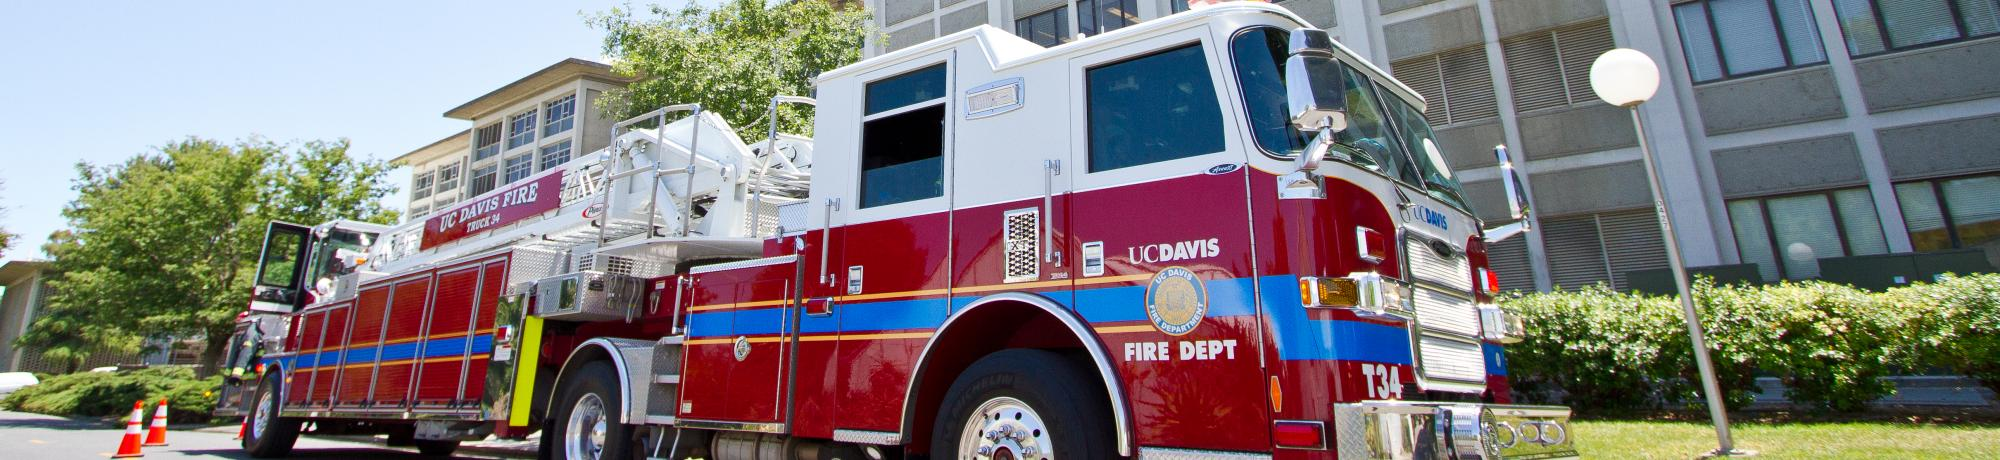 UC Davis Fire Truck 34 parked outside of an emergency call.